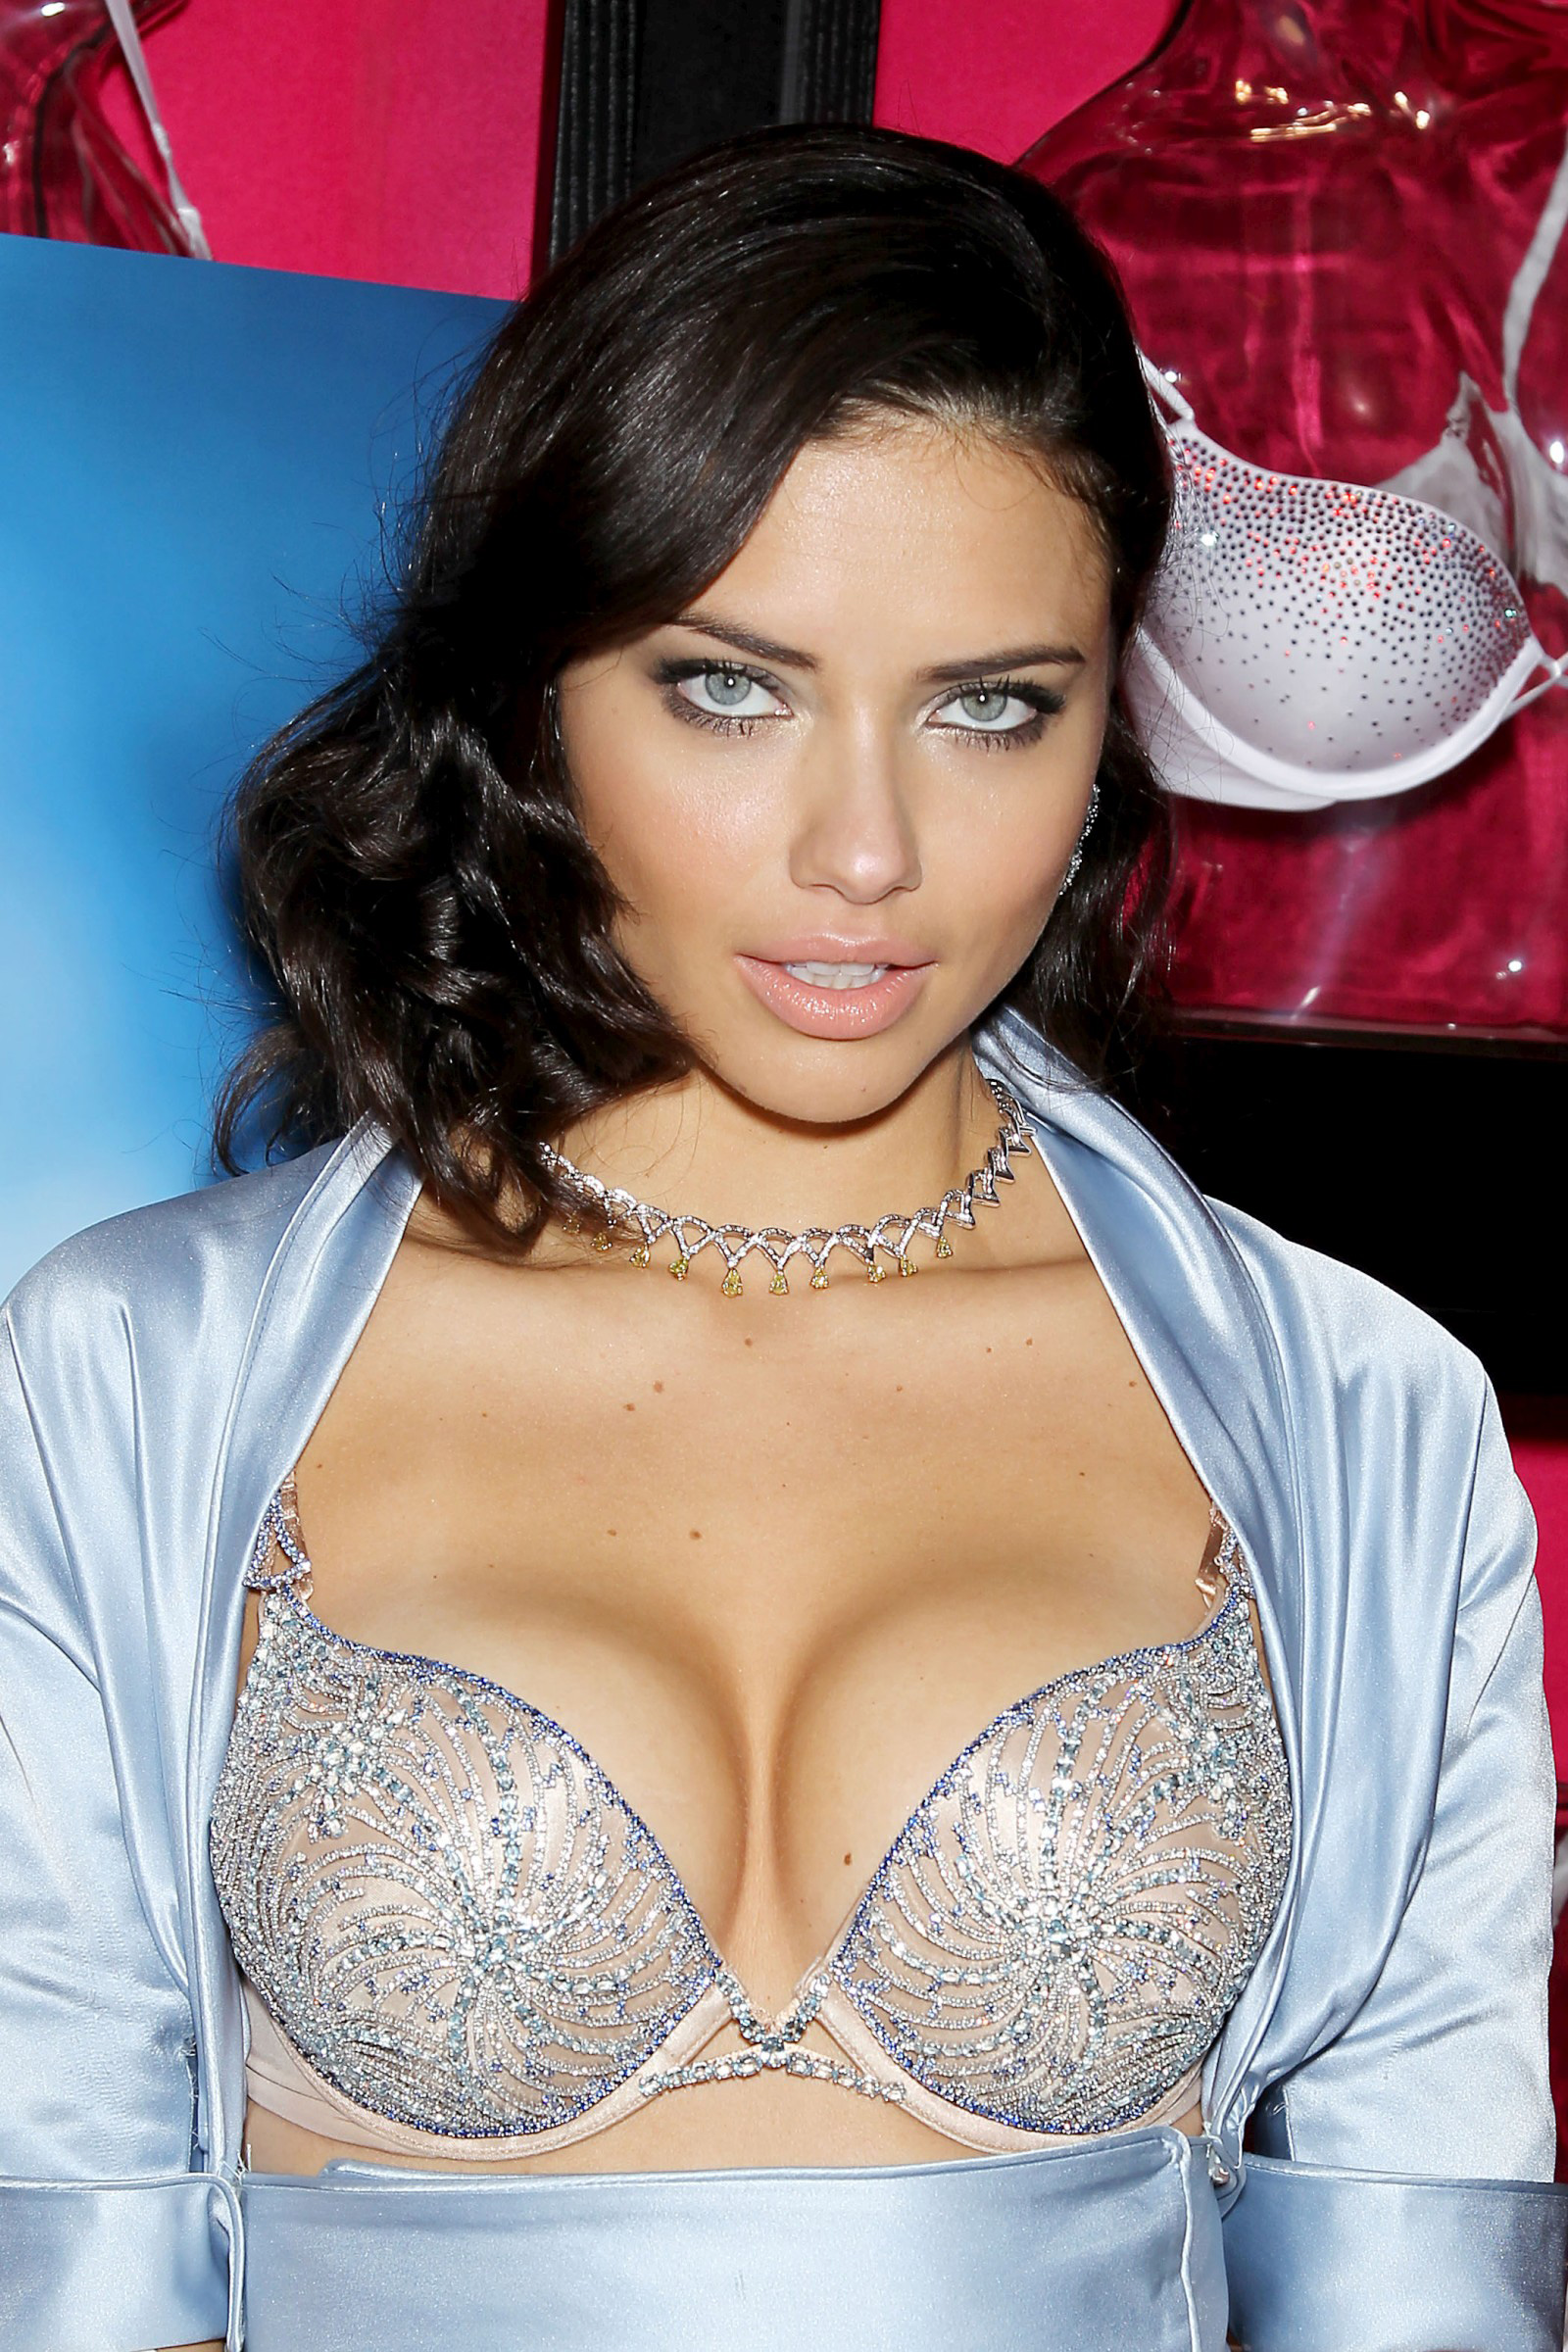 Adriana-Lima-wearing-$2-million-diamond-studded-Victoria's-Secret-Fantasy-Bra-1